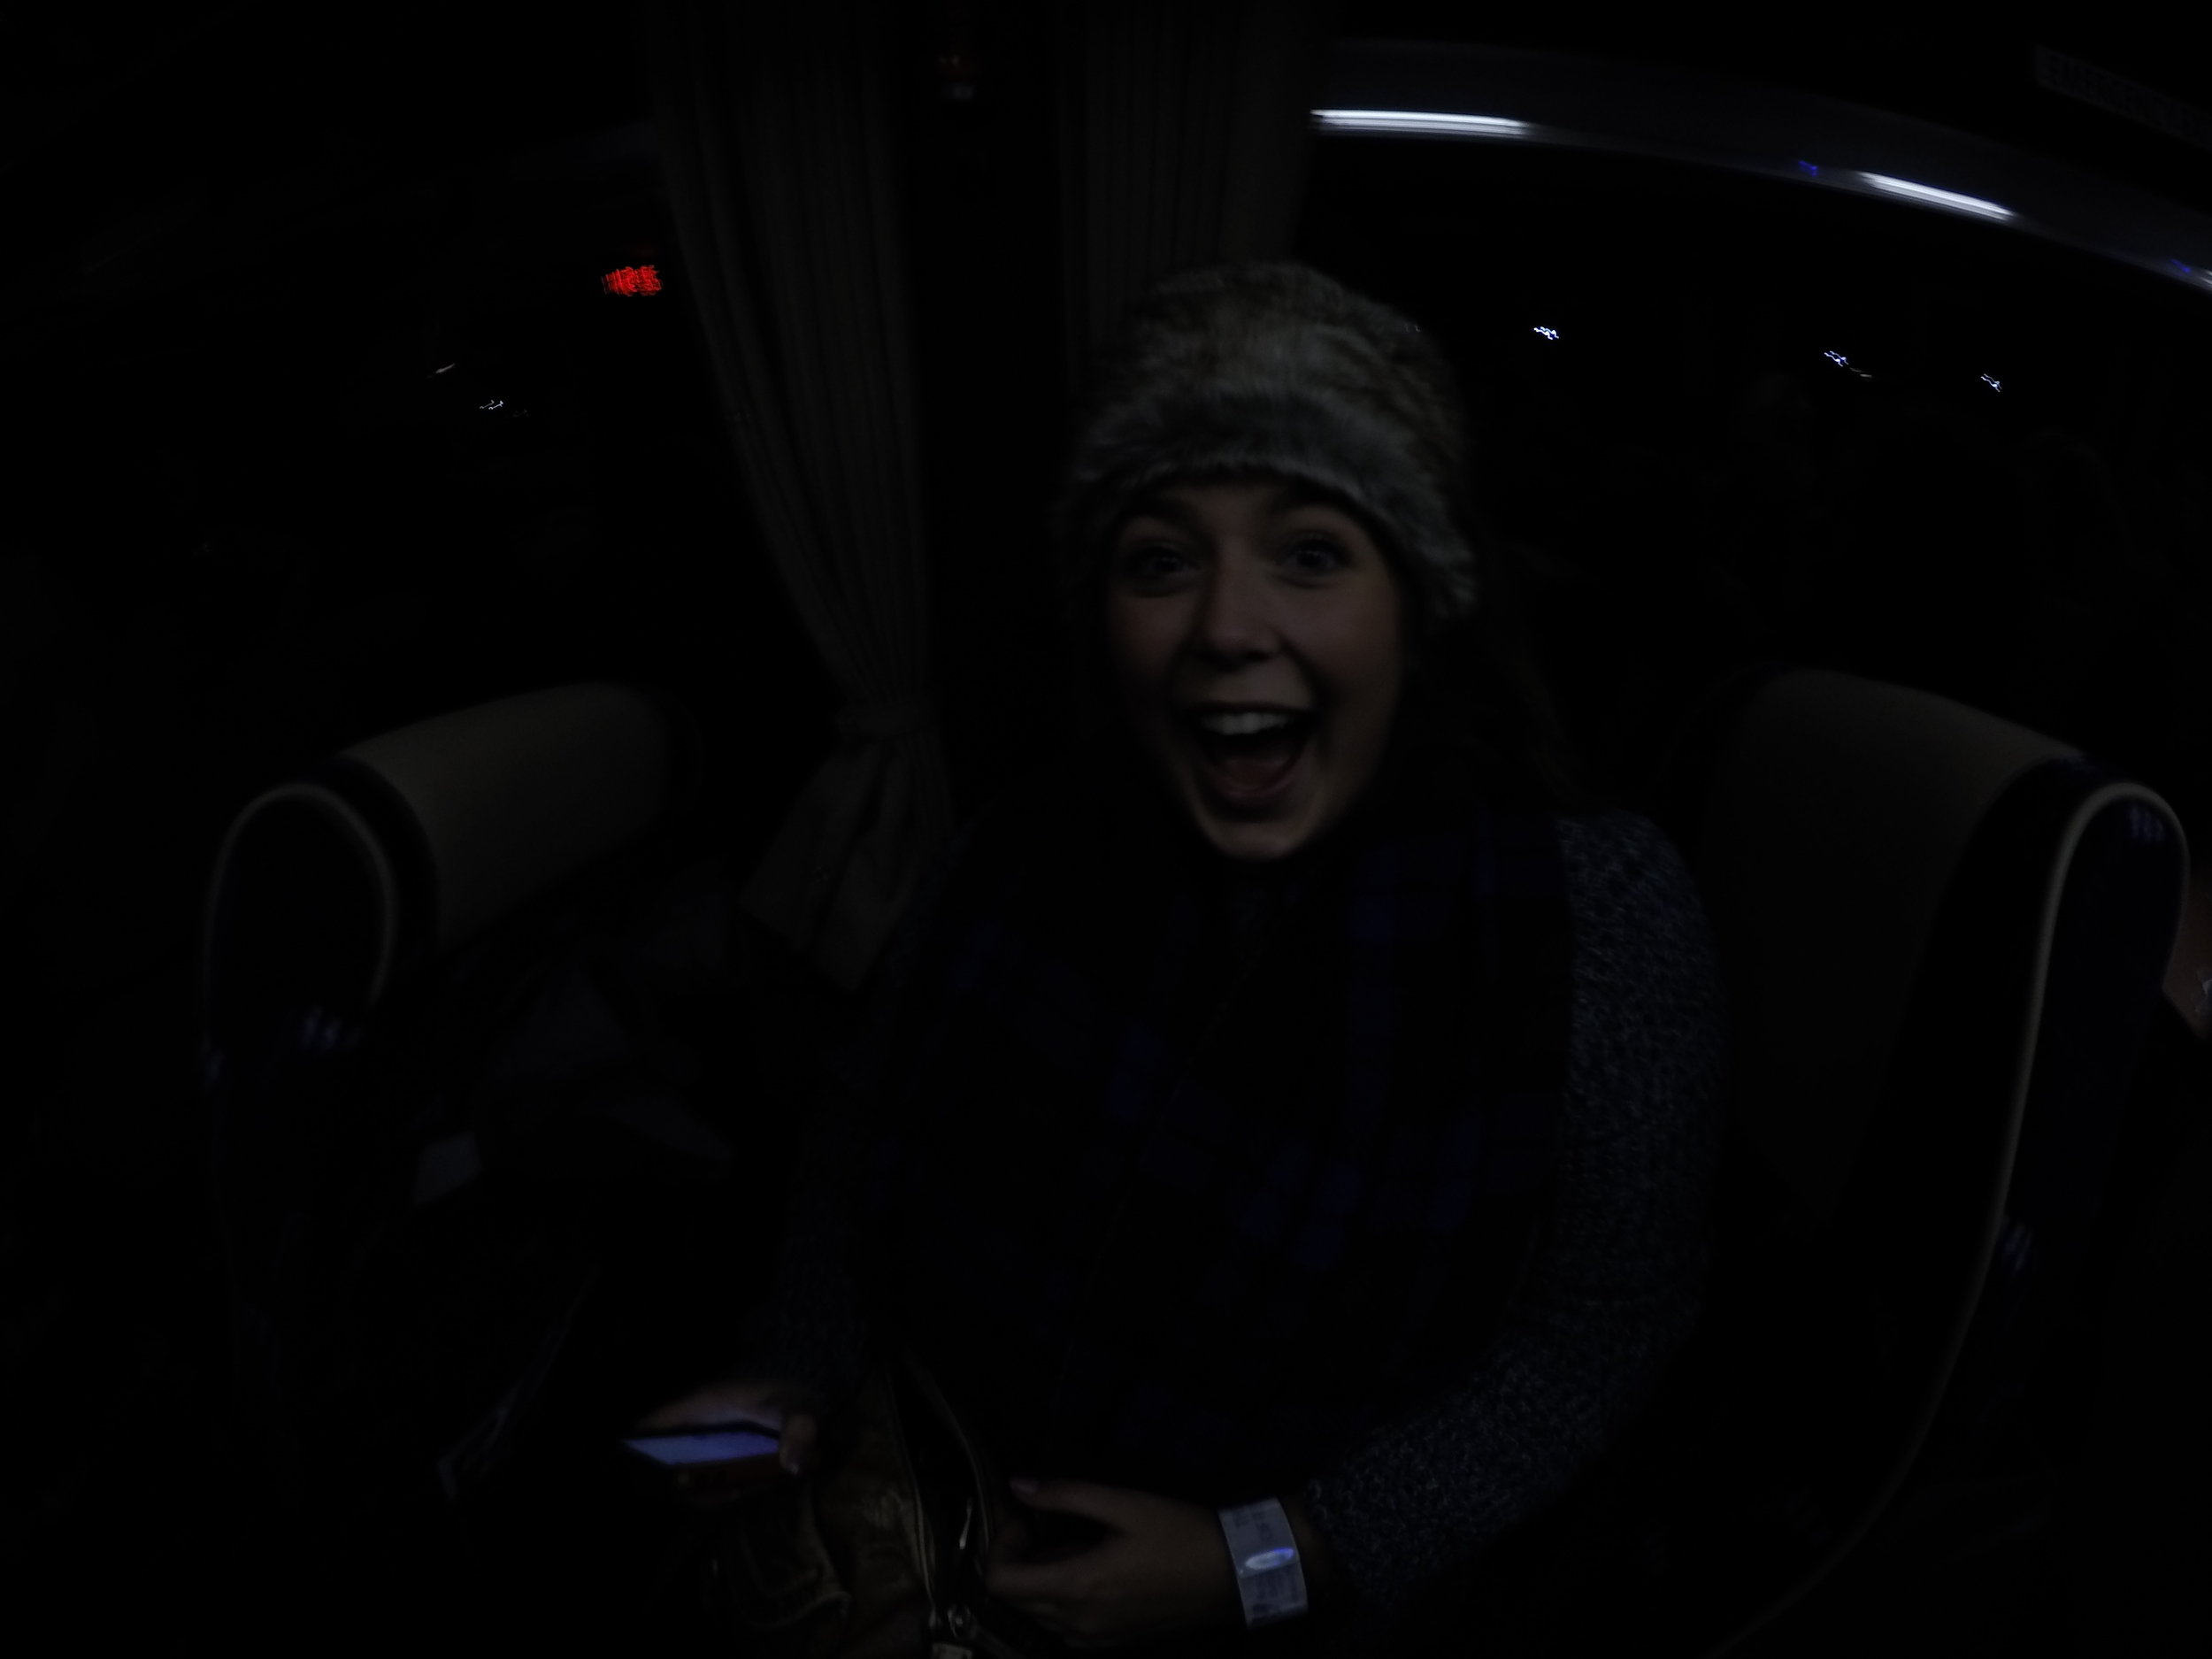 My super excited face after seeing the lights!